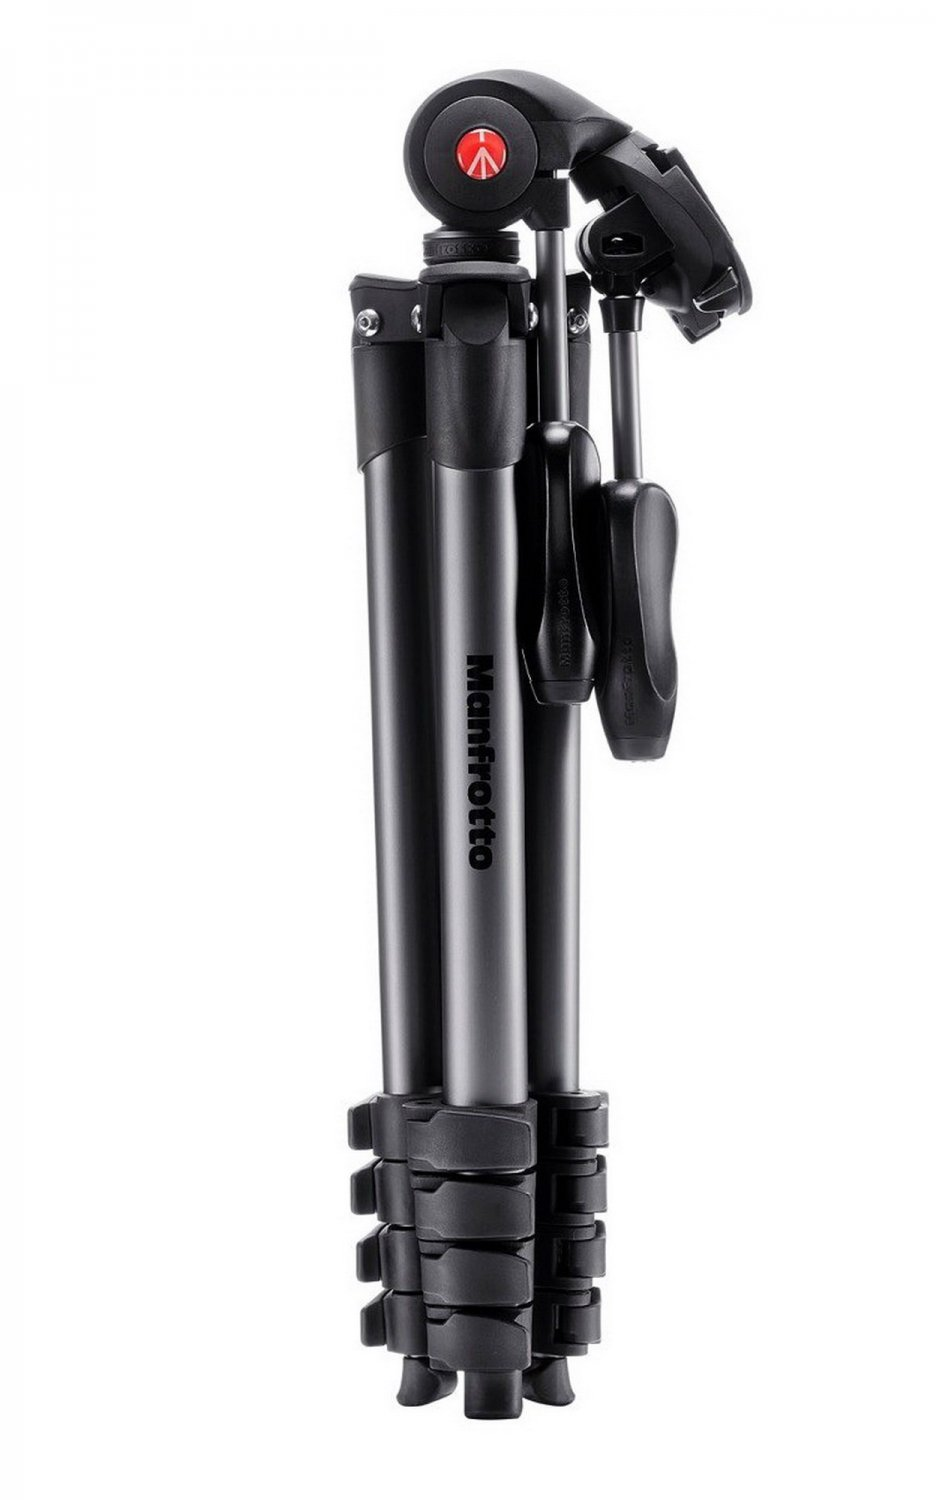 Manfrotto MK COMPACT ACN 002